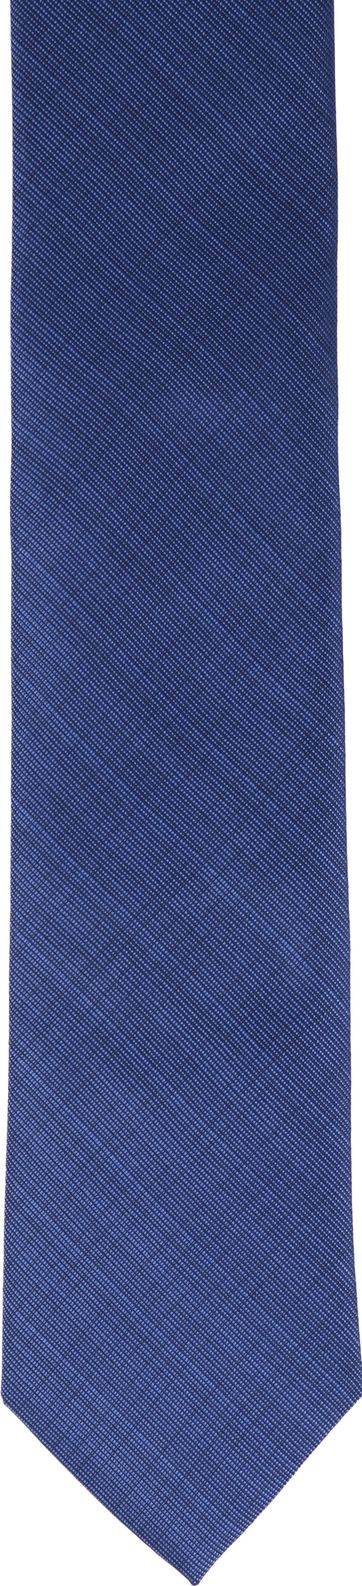 Silk Tie Dark Blue K82-1